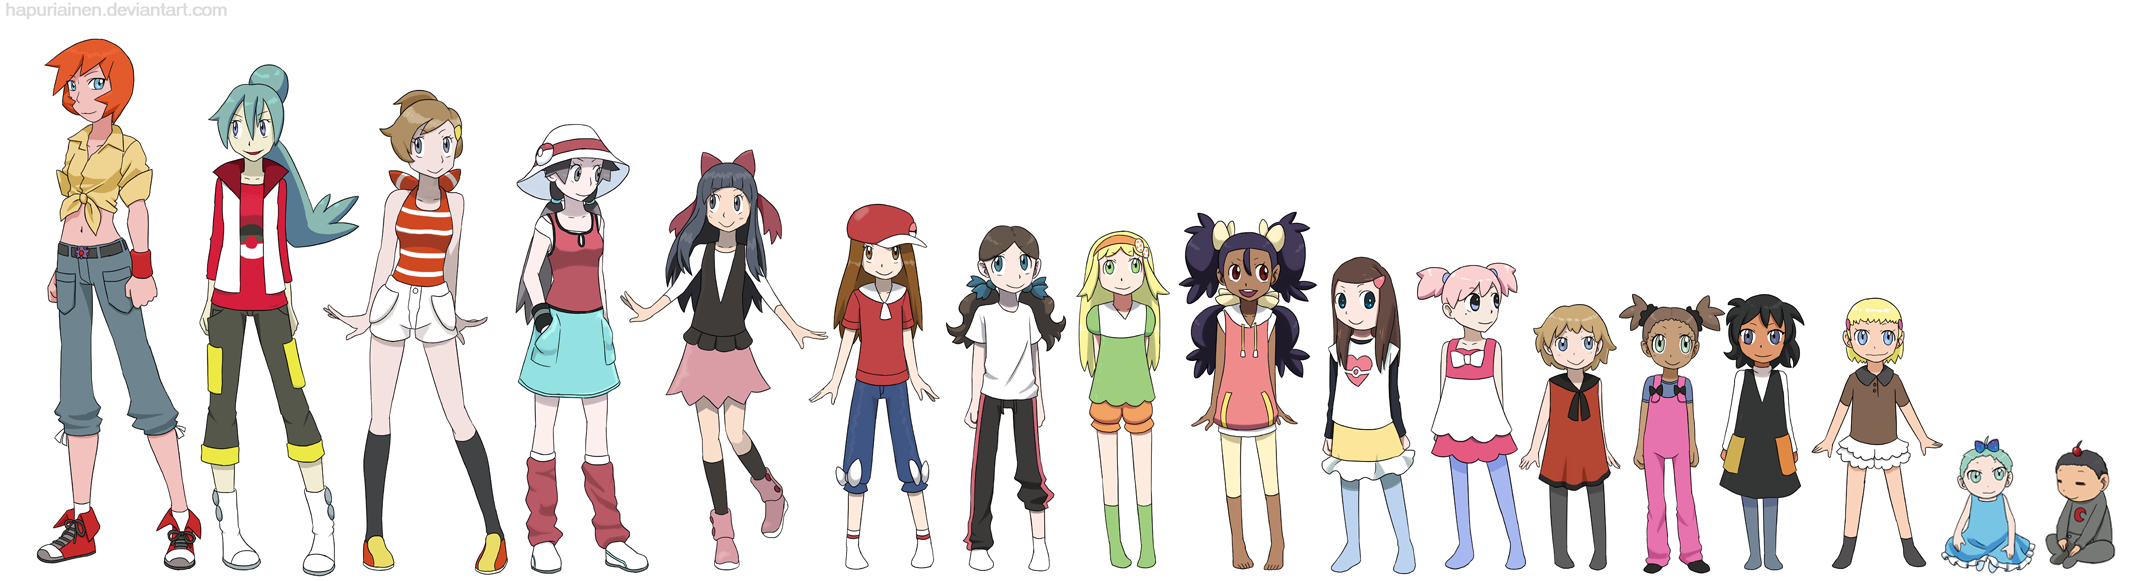 Anime Characters Age : Pokegirl ages by hapuriainen on deviantart